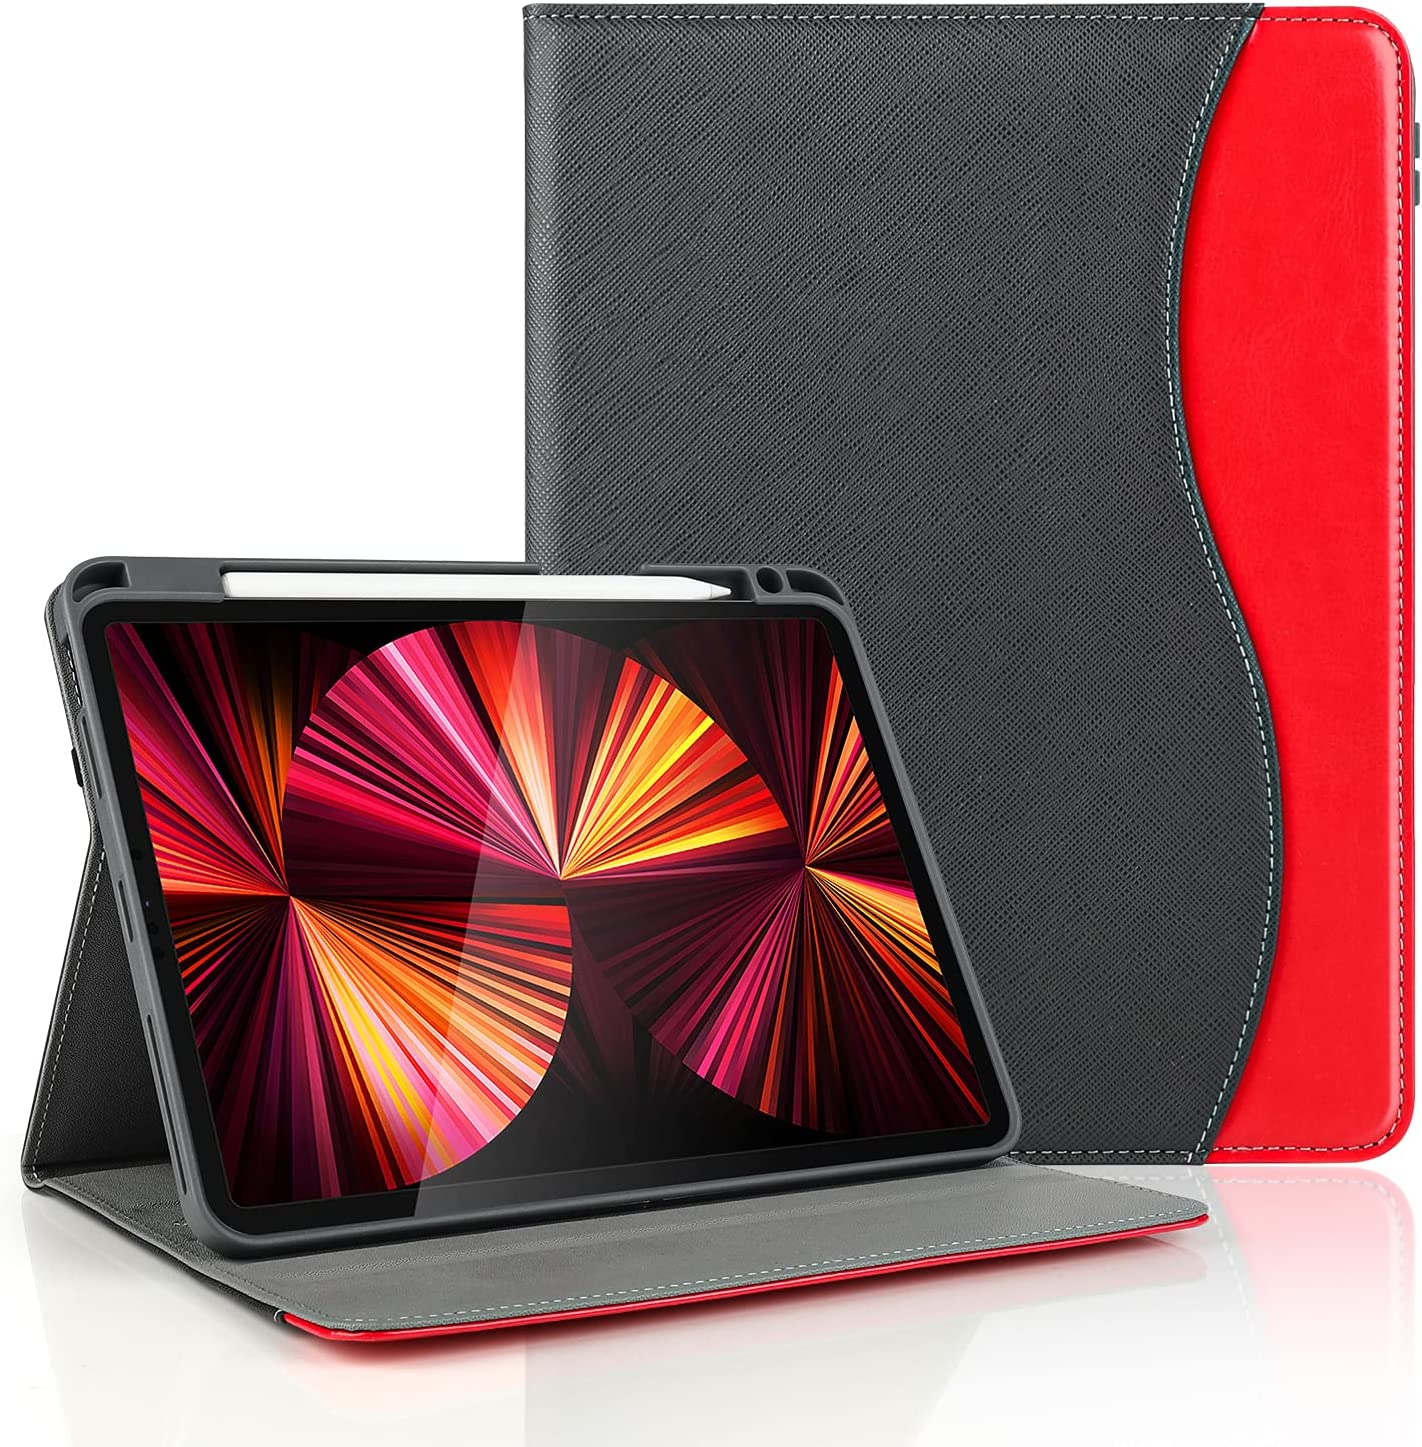 iPad Pro 11 Inch Case 2021/2020, iPad Air 4 Case with Pencil Holder, Multi-Angle Viewing Full Body Protective Shockproof Smart Cover Auto Wake/Sleep - Black+Red